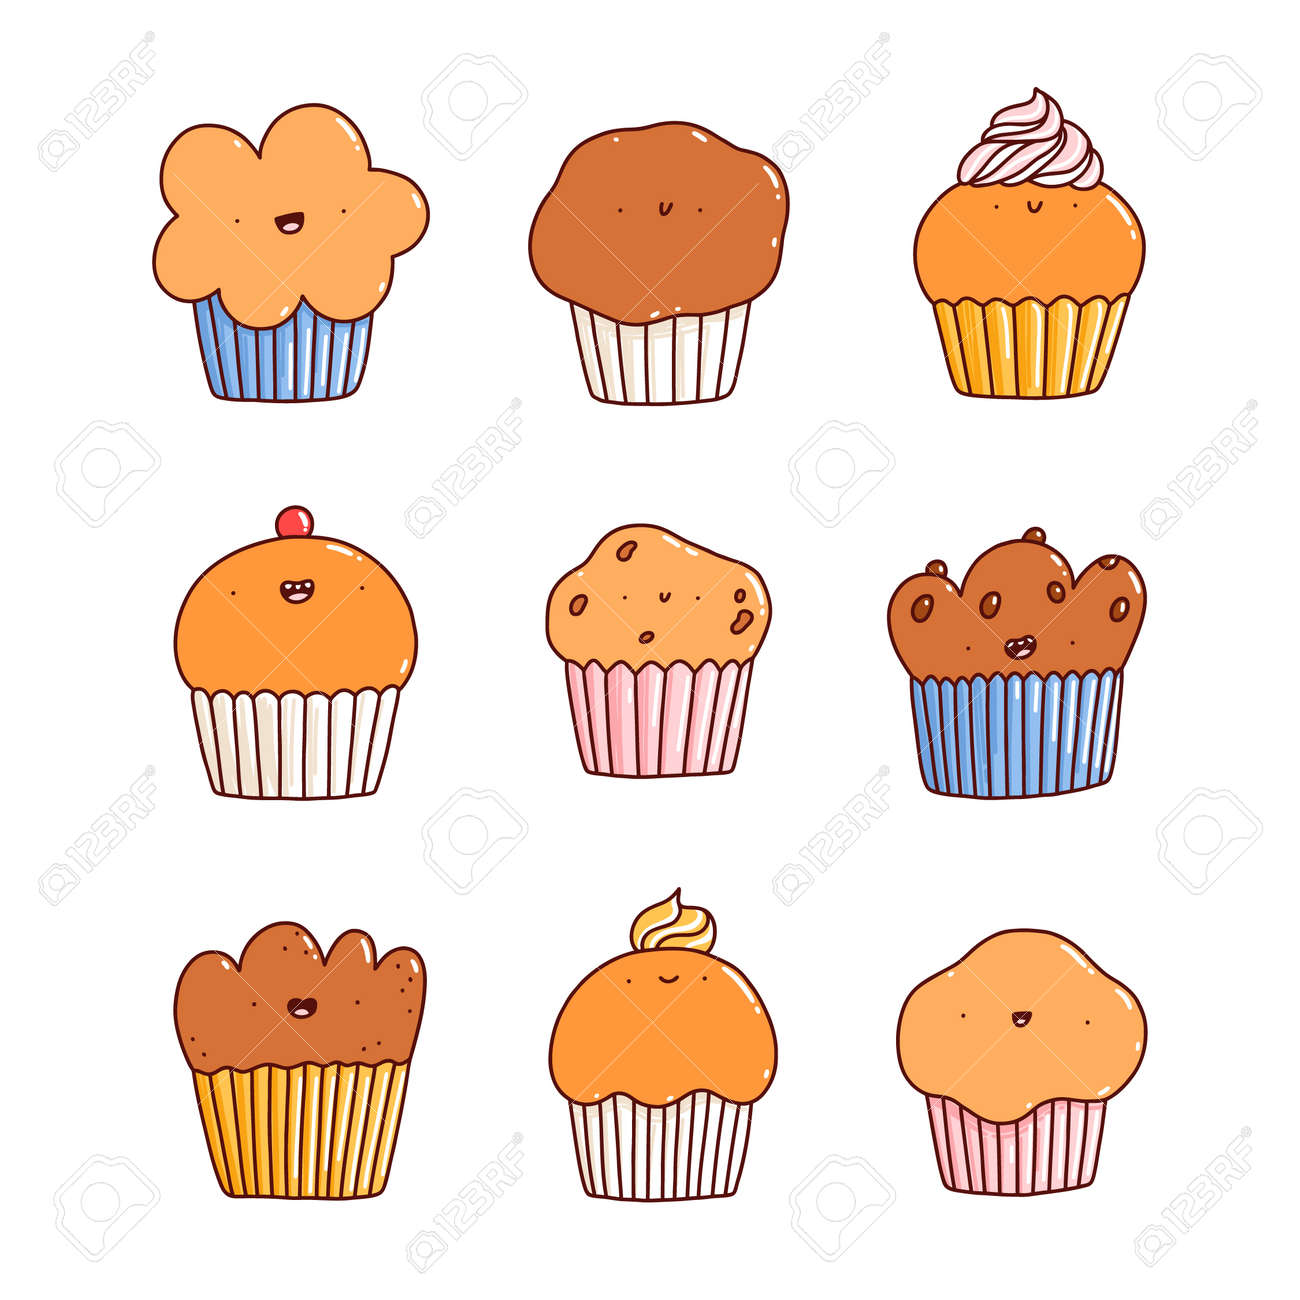 Cartoon cupcakes and muffins cute characters vector set, isolated on white background - 162389503